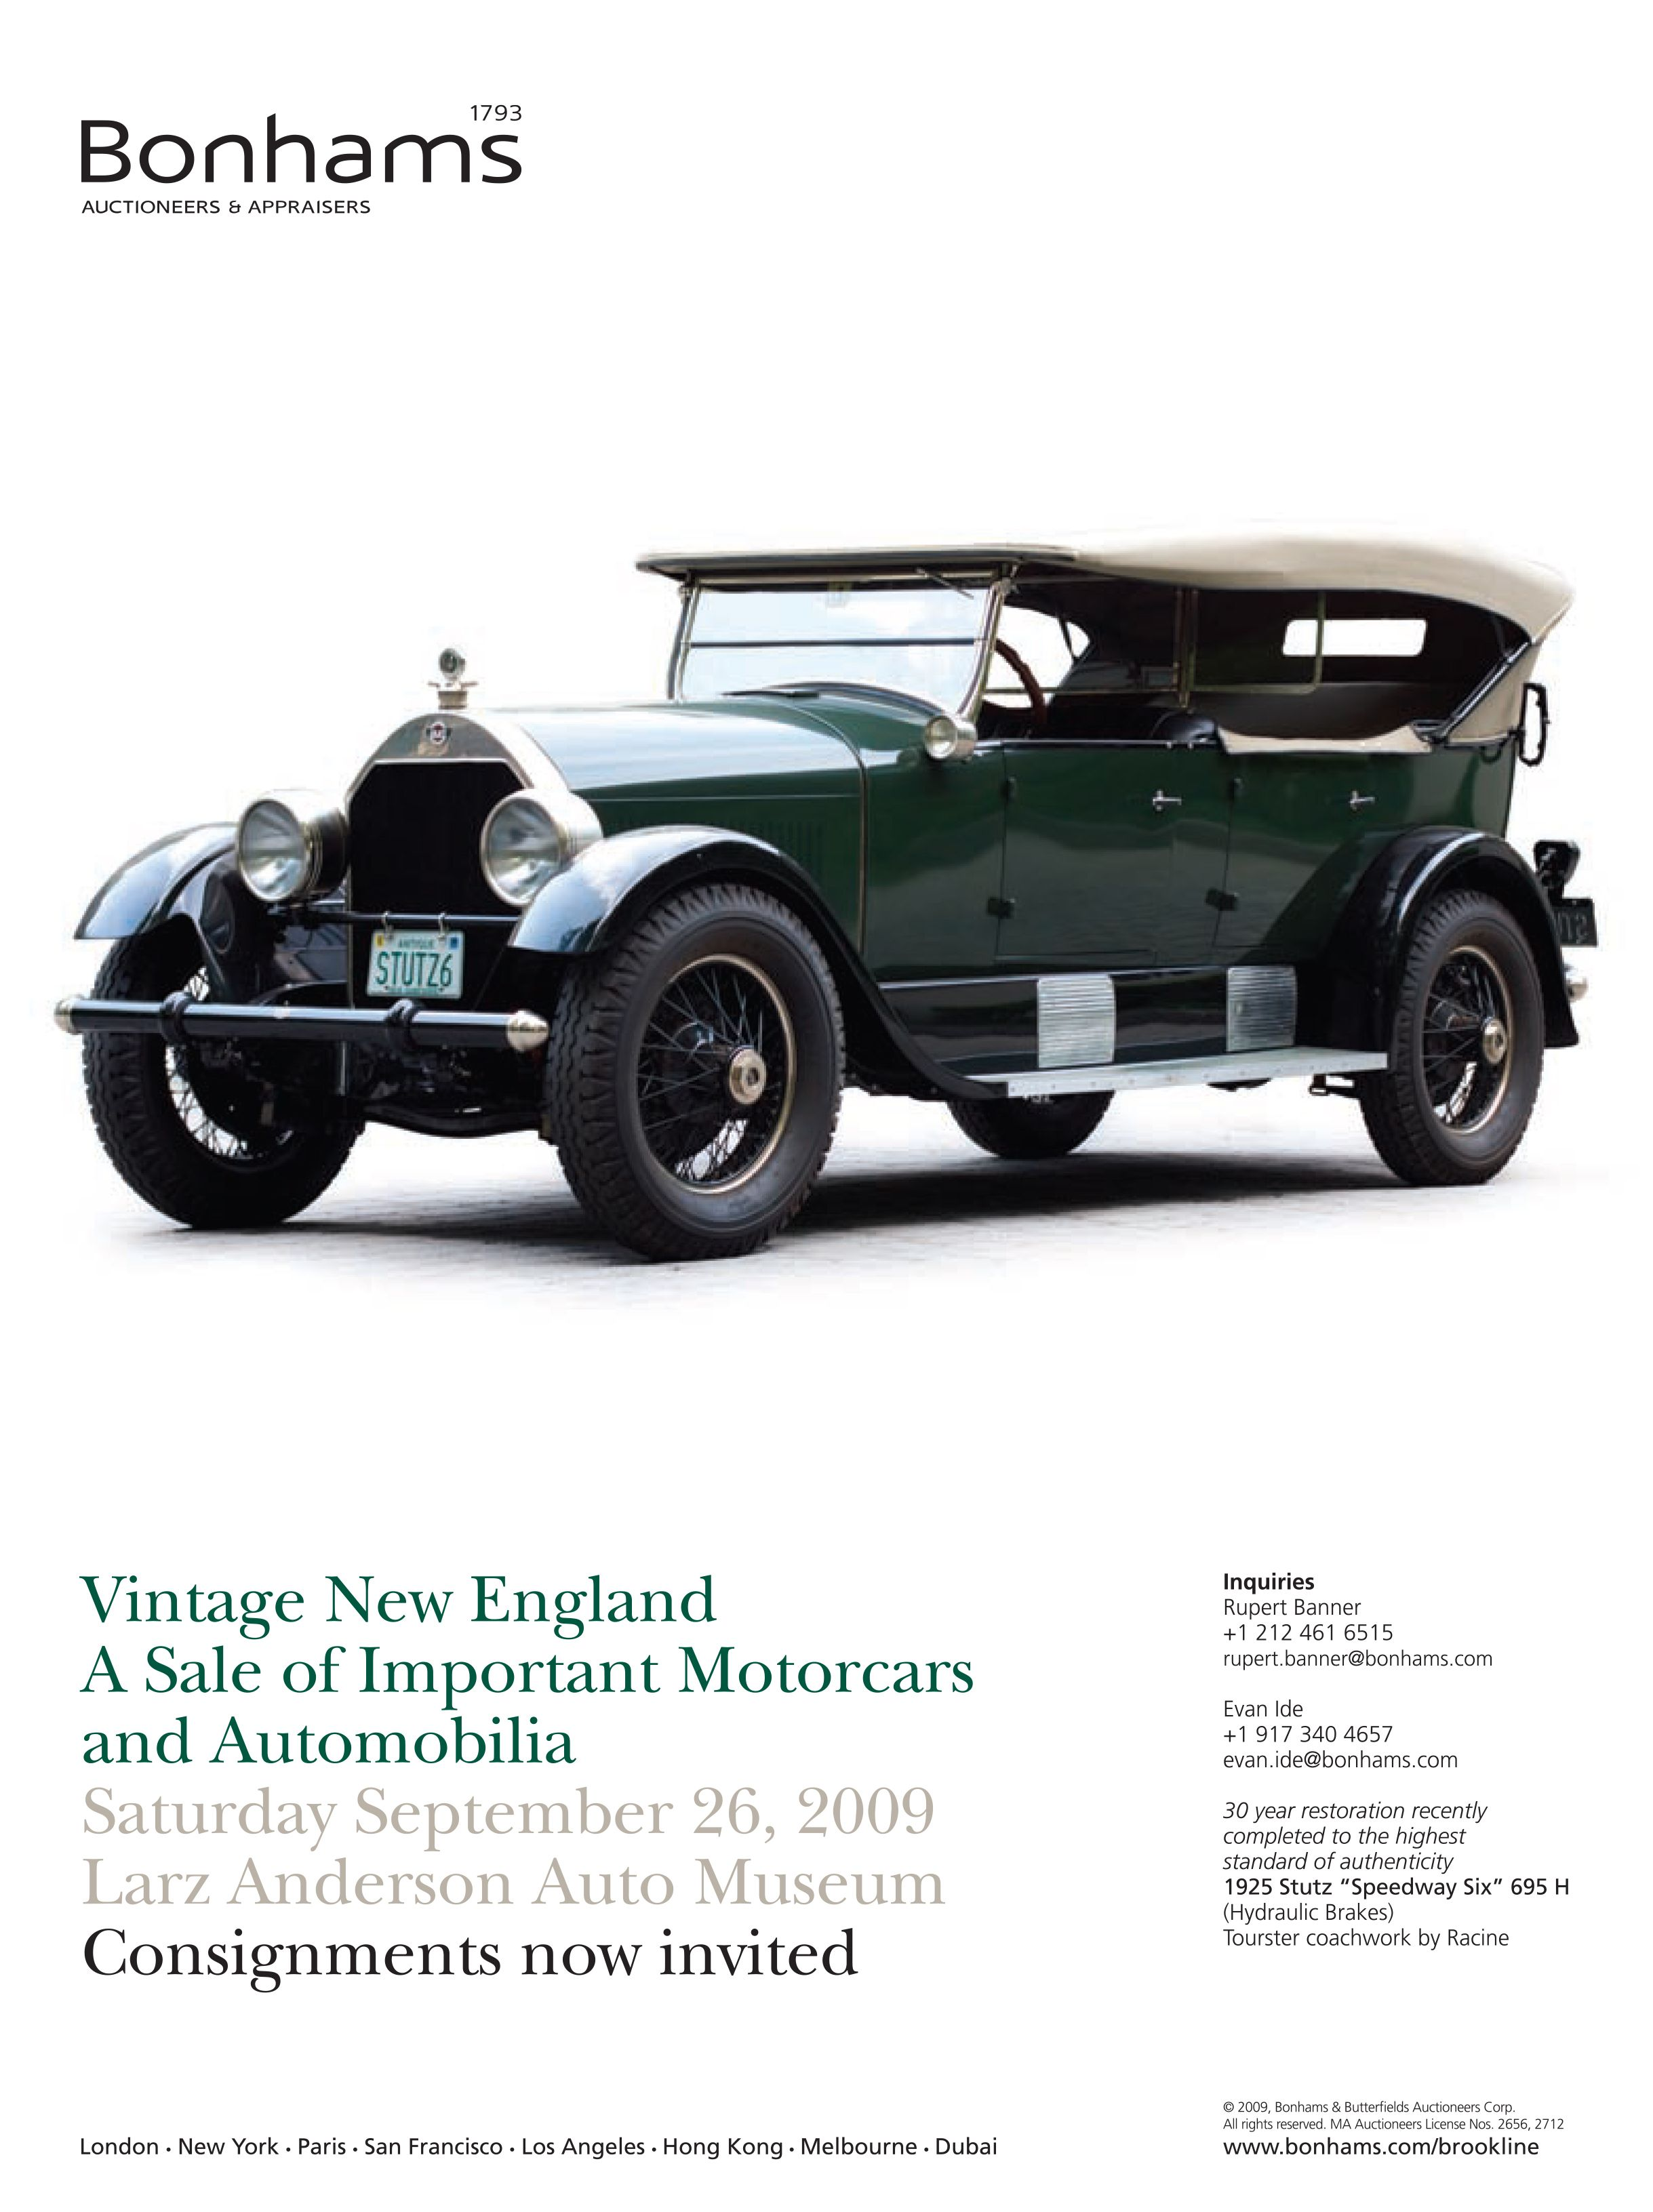 Resources for Artists: Public Domain Images from a Vintage Car ...